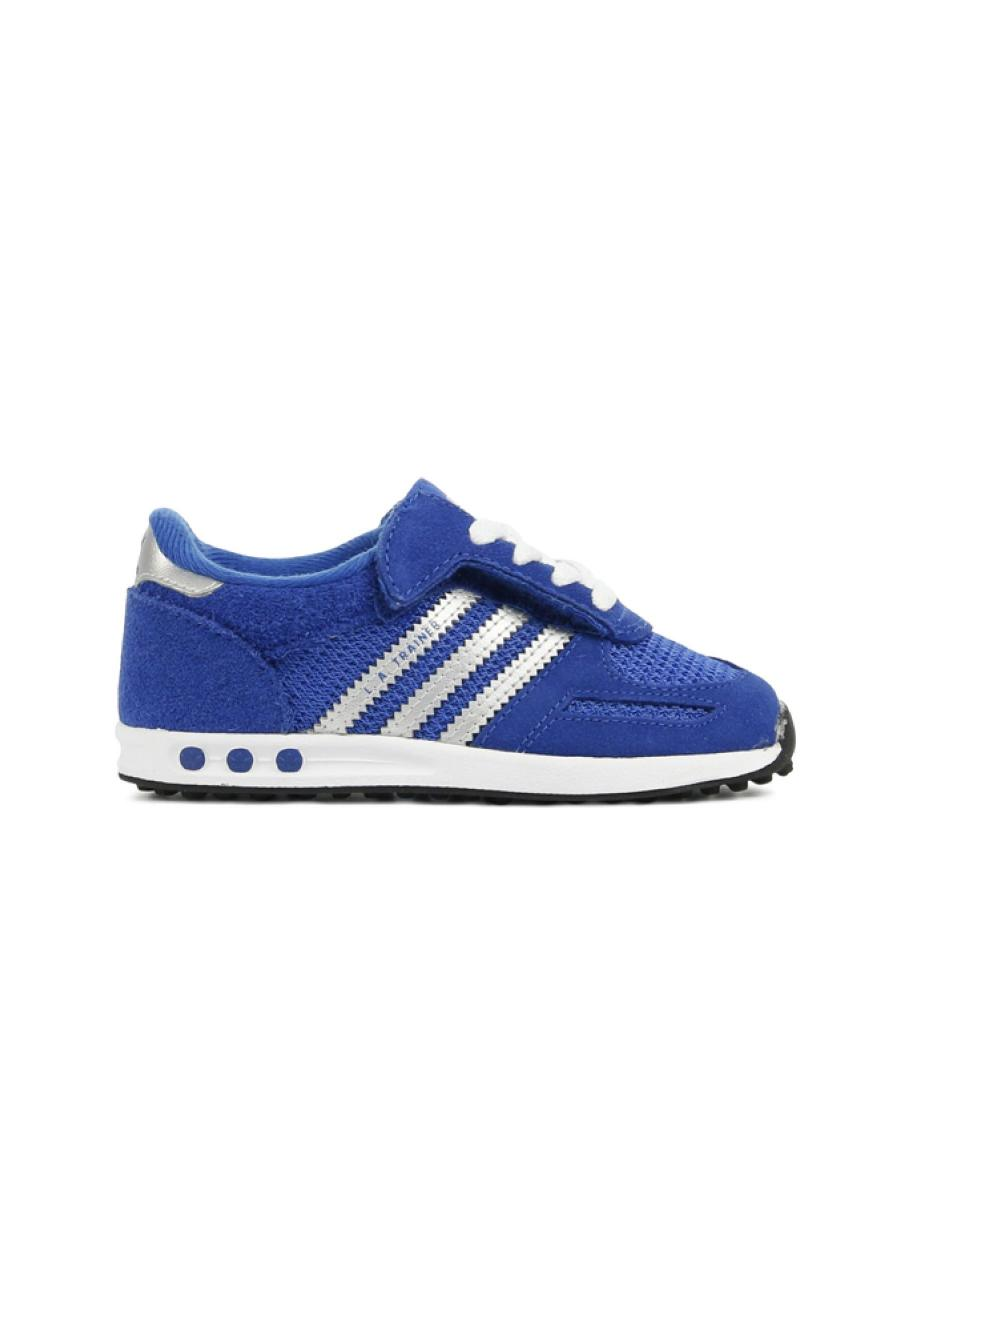 Jongens-adidas Originals Sneakers Stof